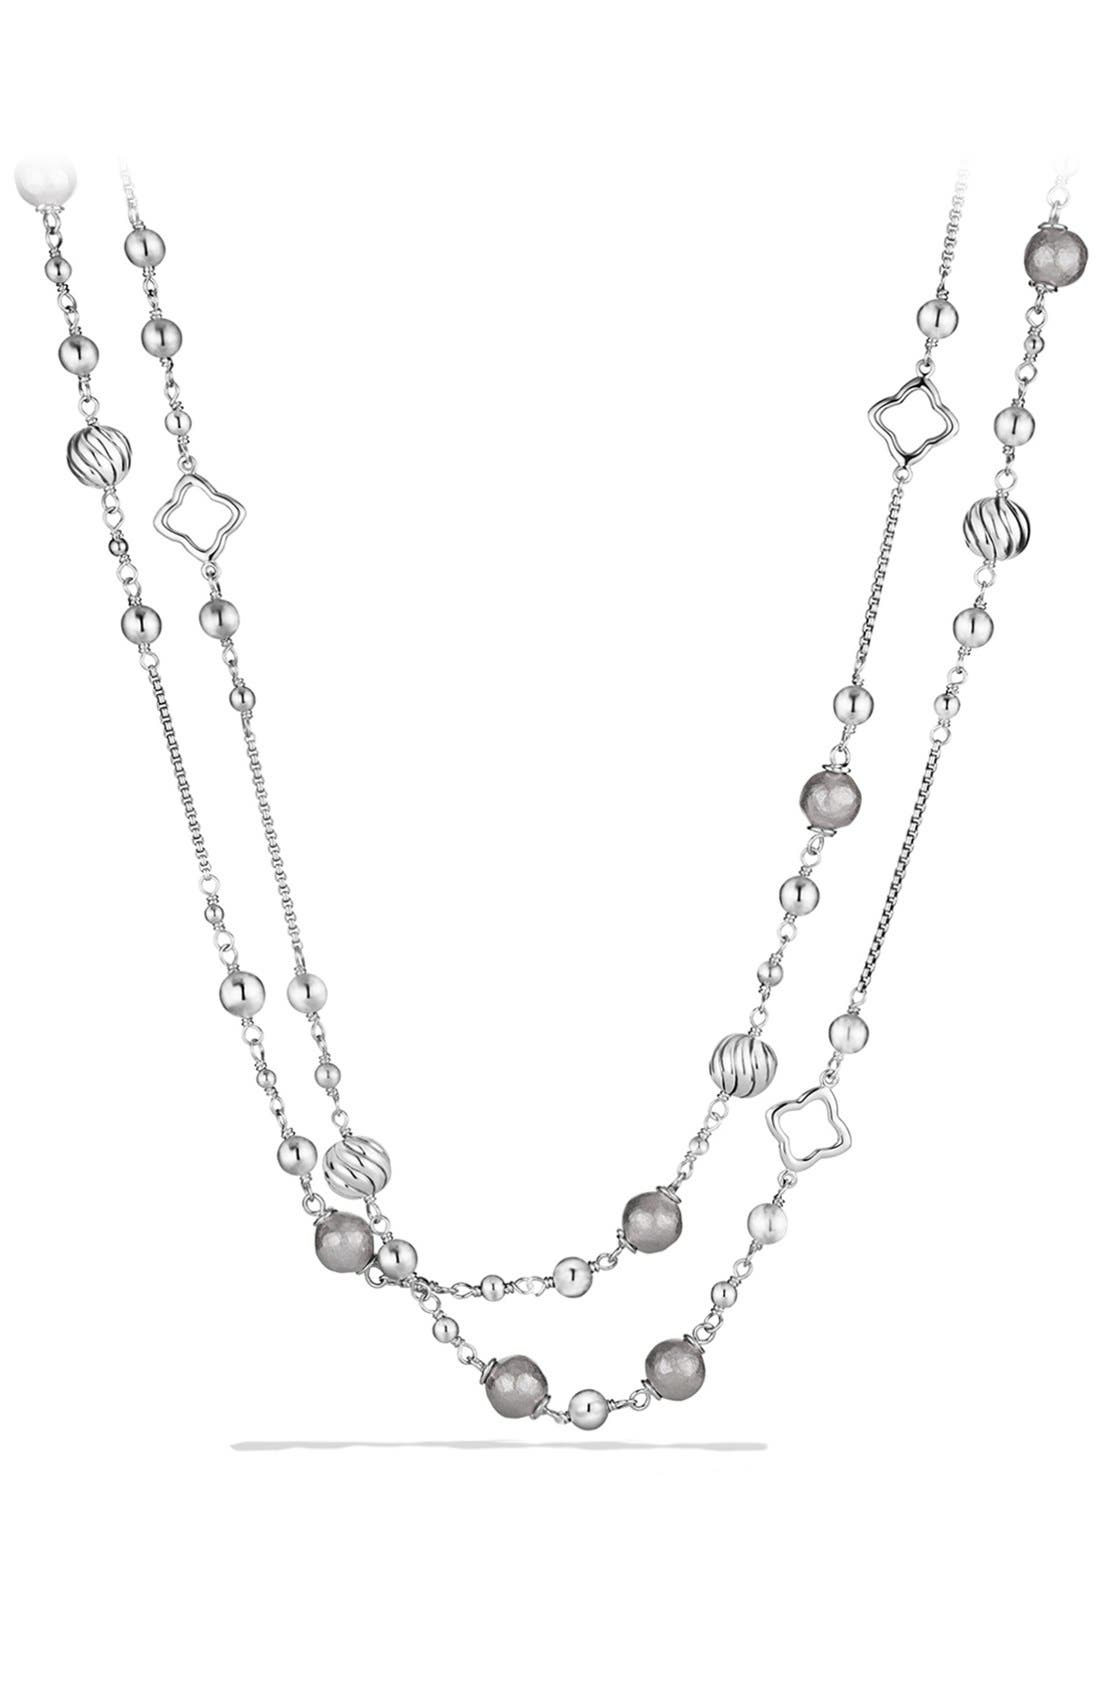 David Yurman 'DY Elements' Chain Necklace